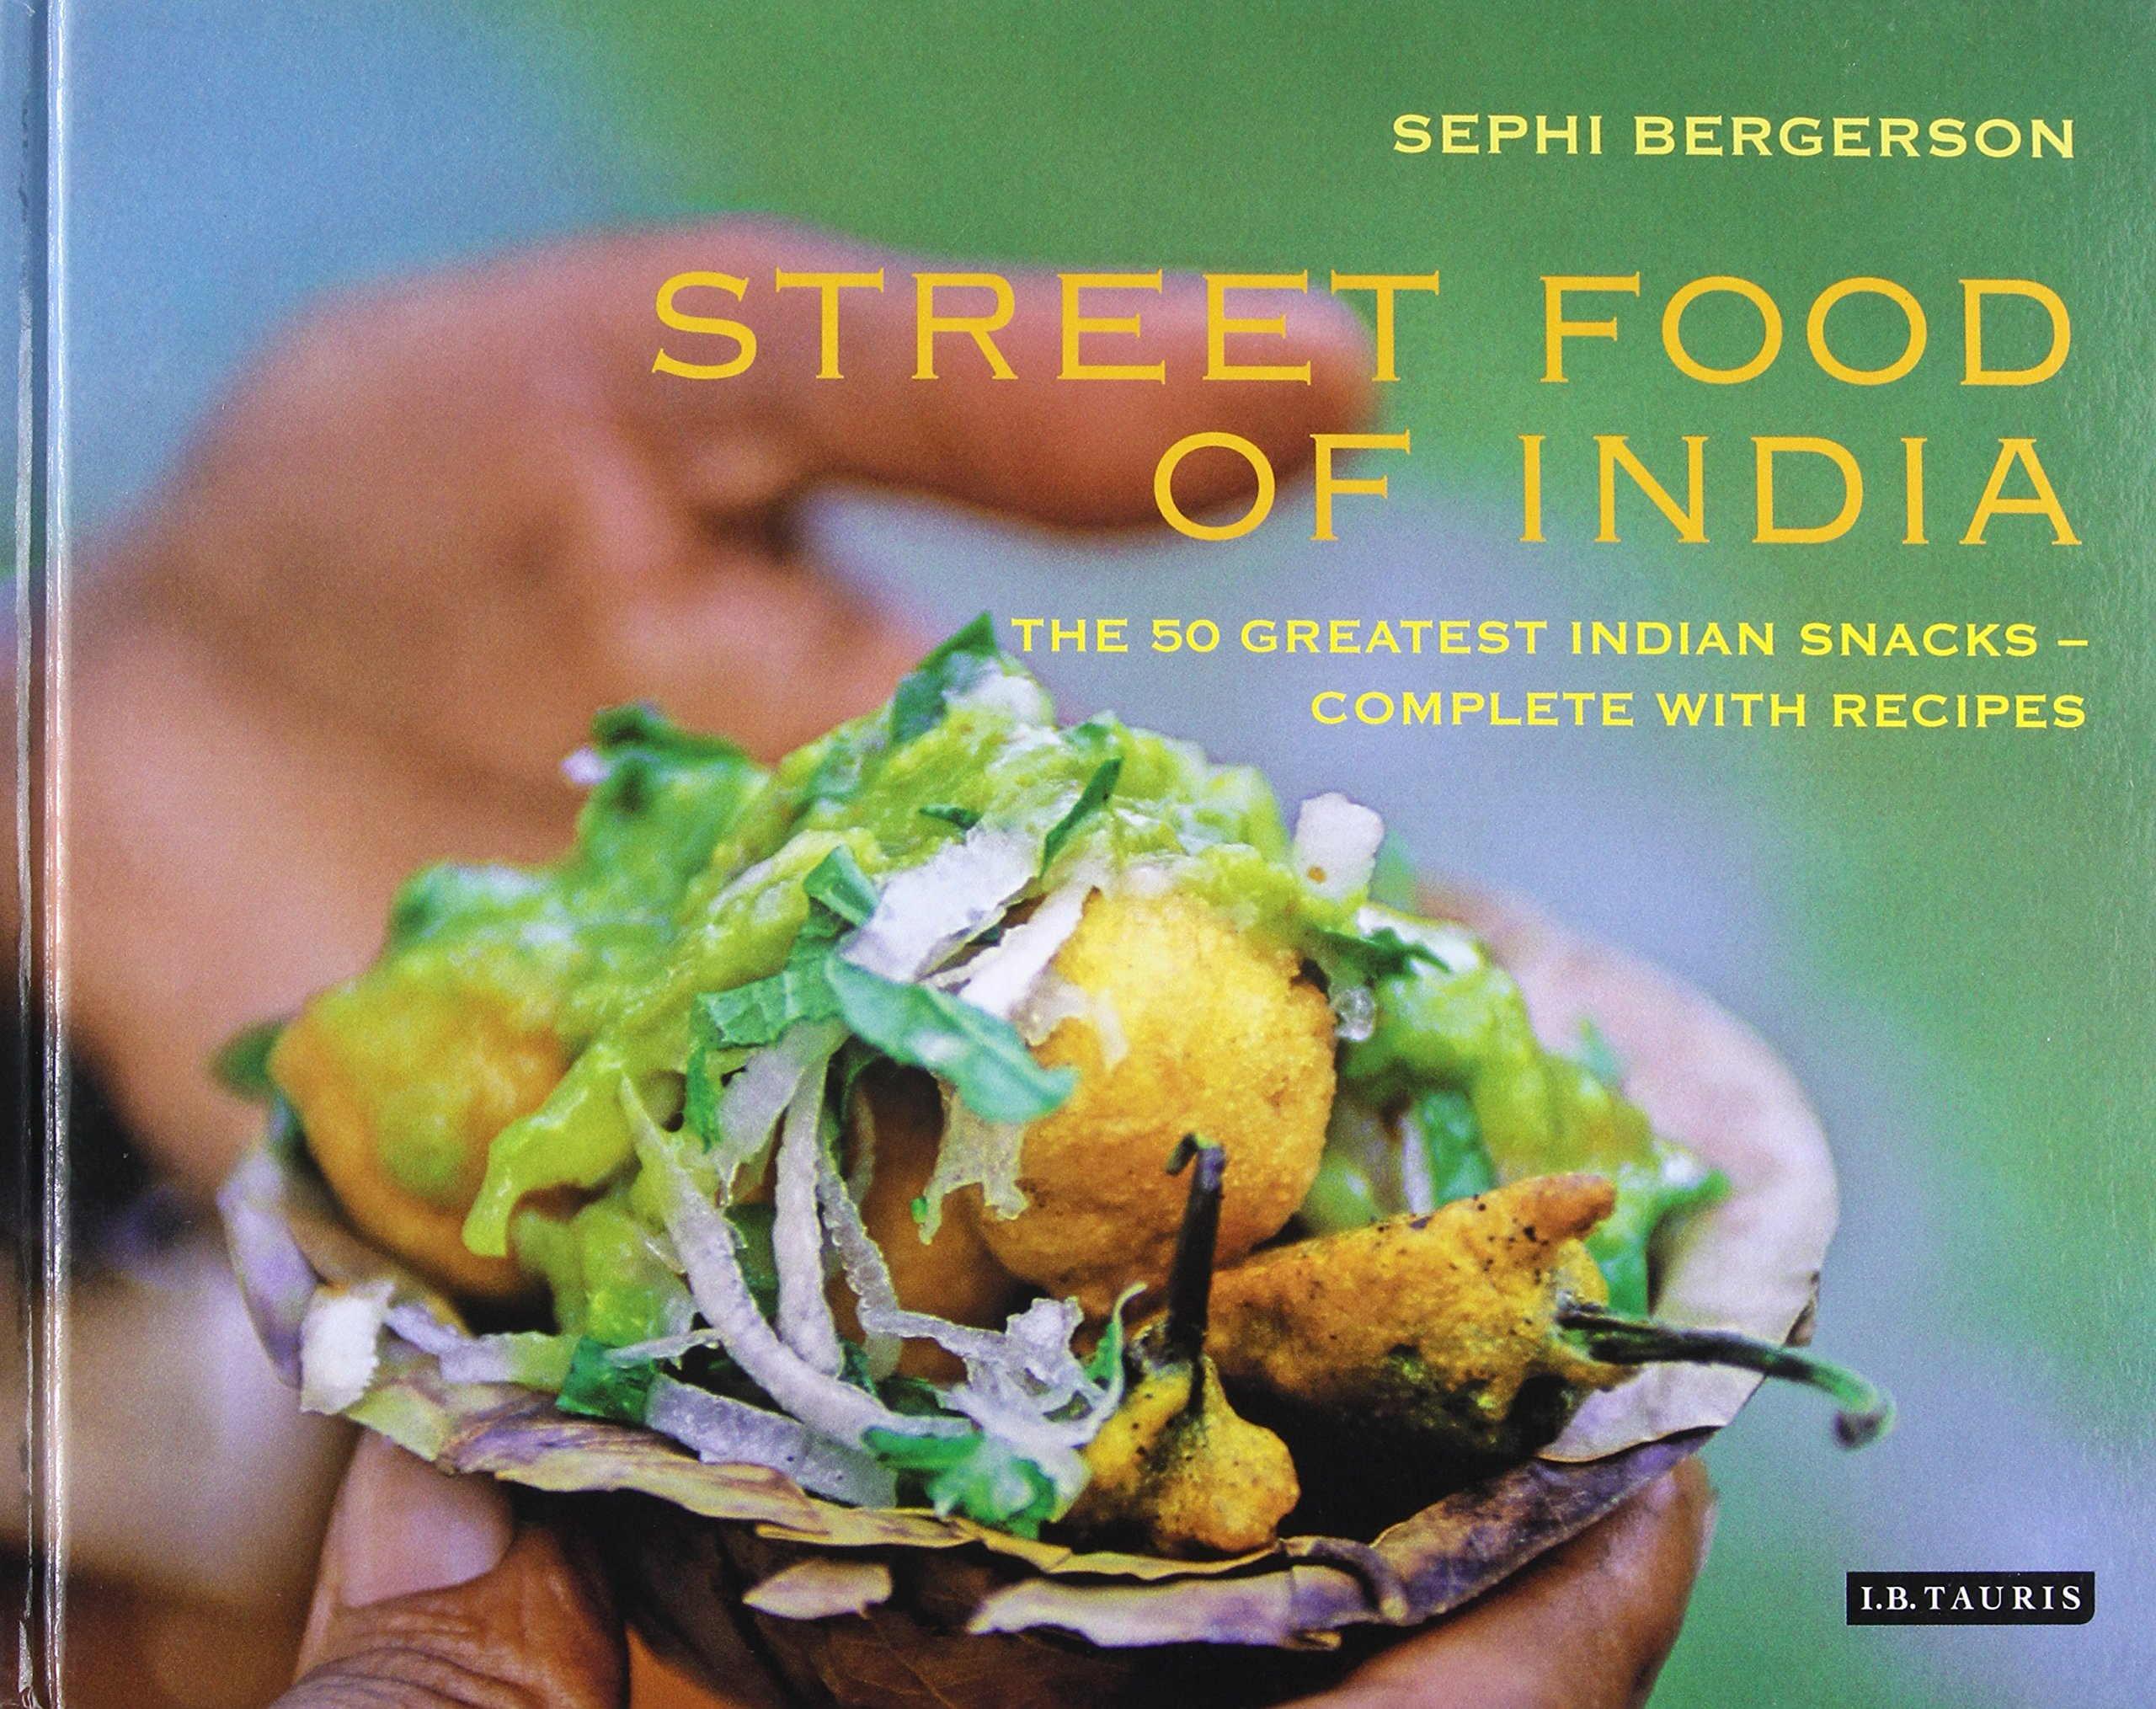 Street food of india the 50 greatest indian snacks complete street food of india the 50 greatest indian snacks complete with recipes sephi bergerson 9781848854208 amazon books forumfinder Gallery